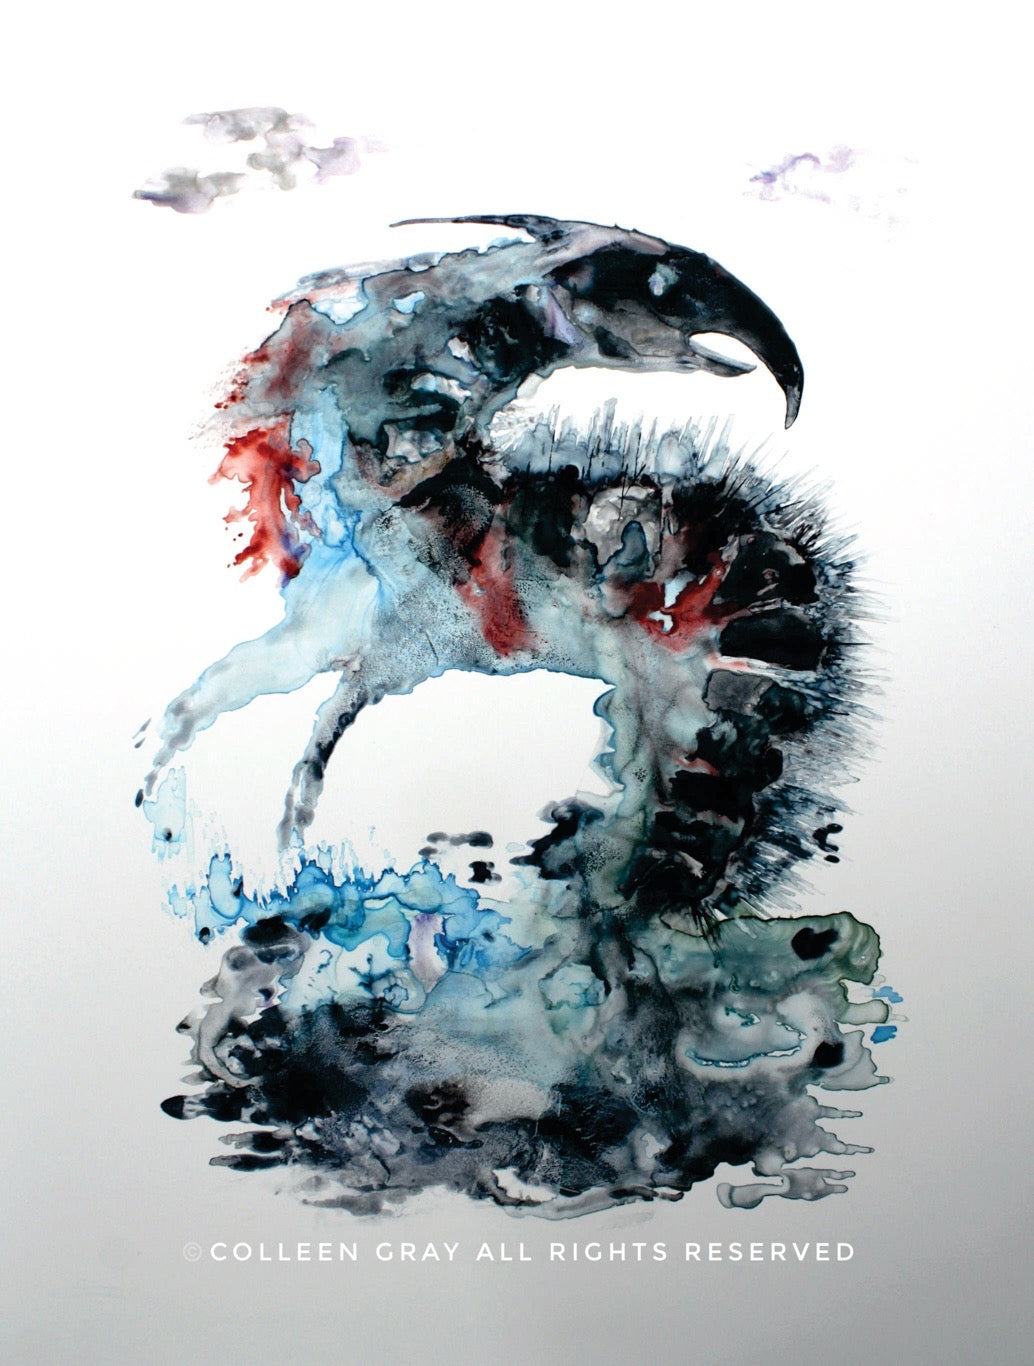 Art Card Title Ancient Bones  by Metis Artist Colleen Gray Indigenous Canadian Art Work. Creature with a sharp black beak rises out of the black and blue water. For sale at https://artforaidshop.ca